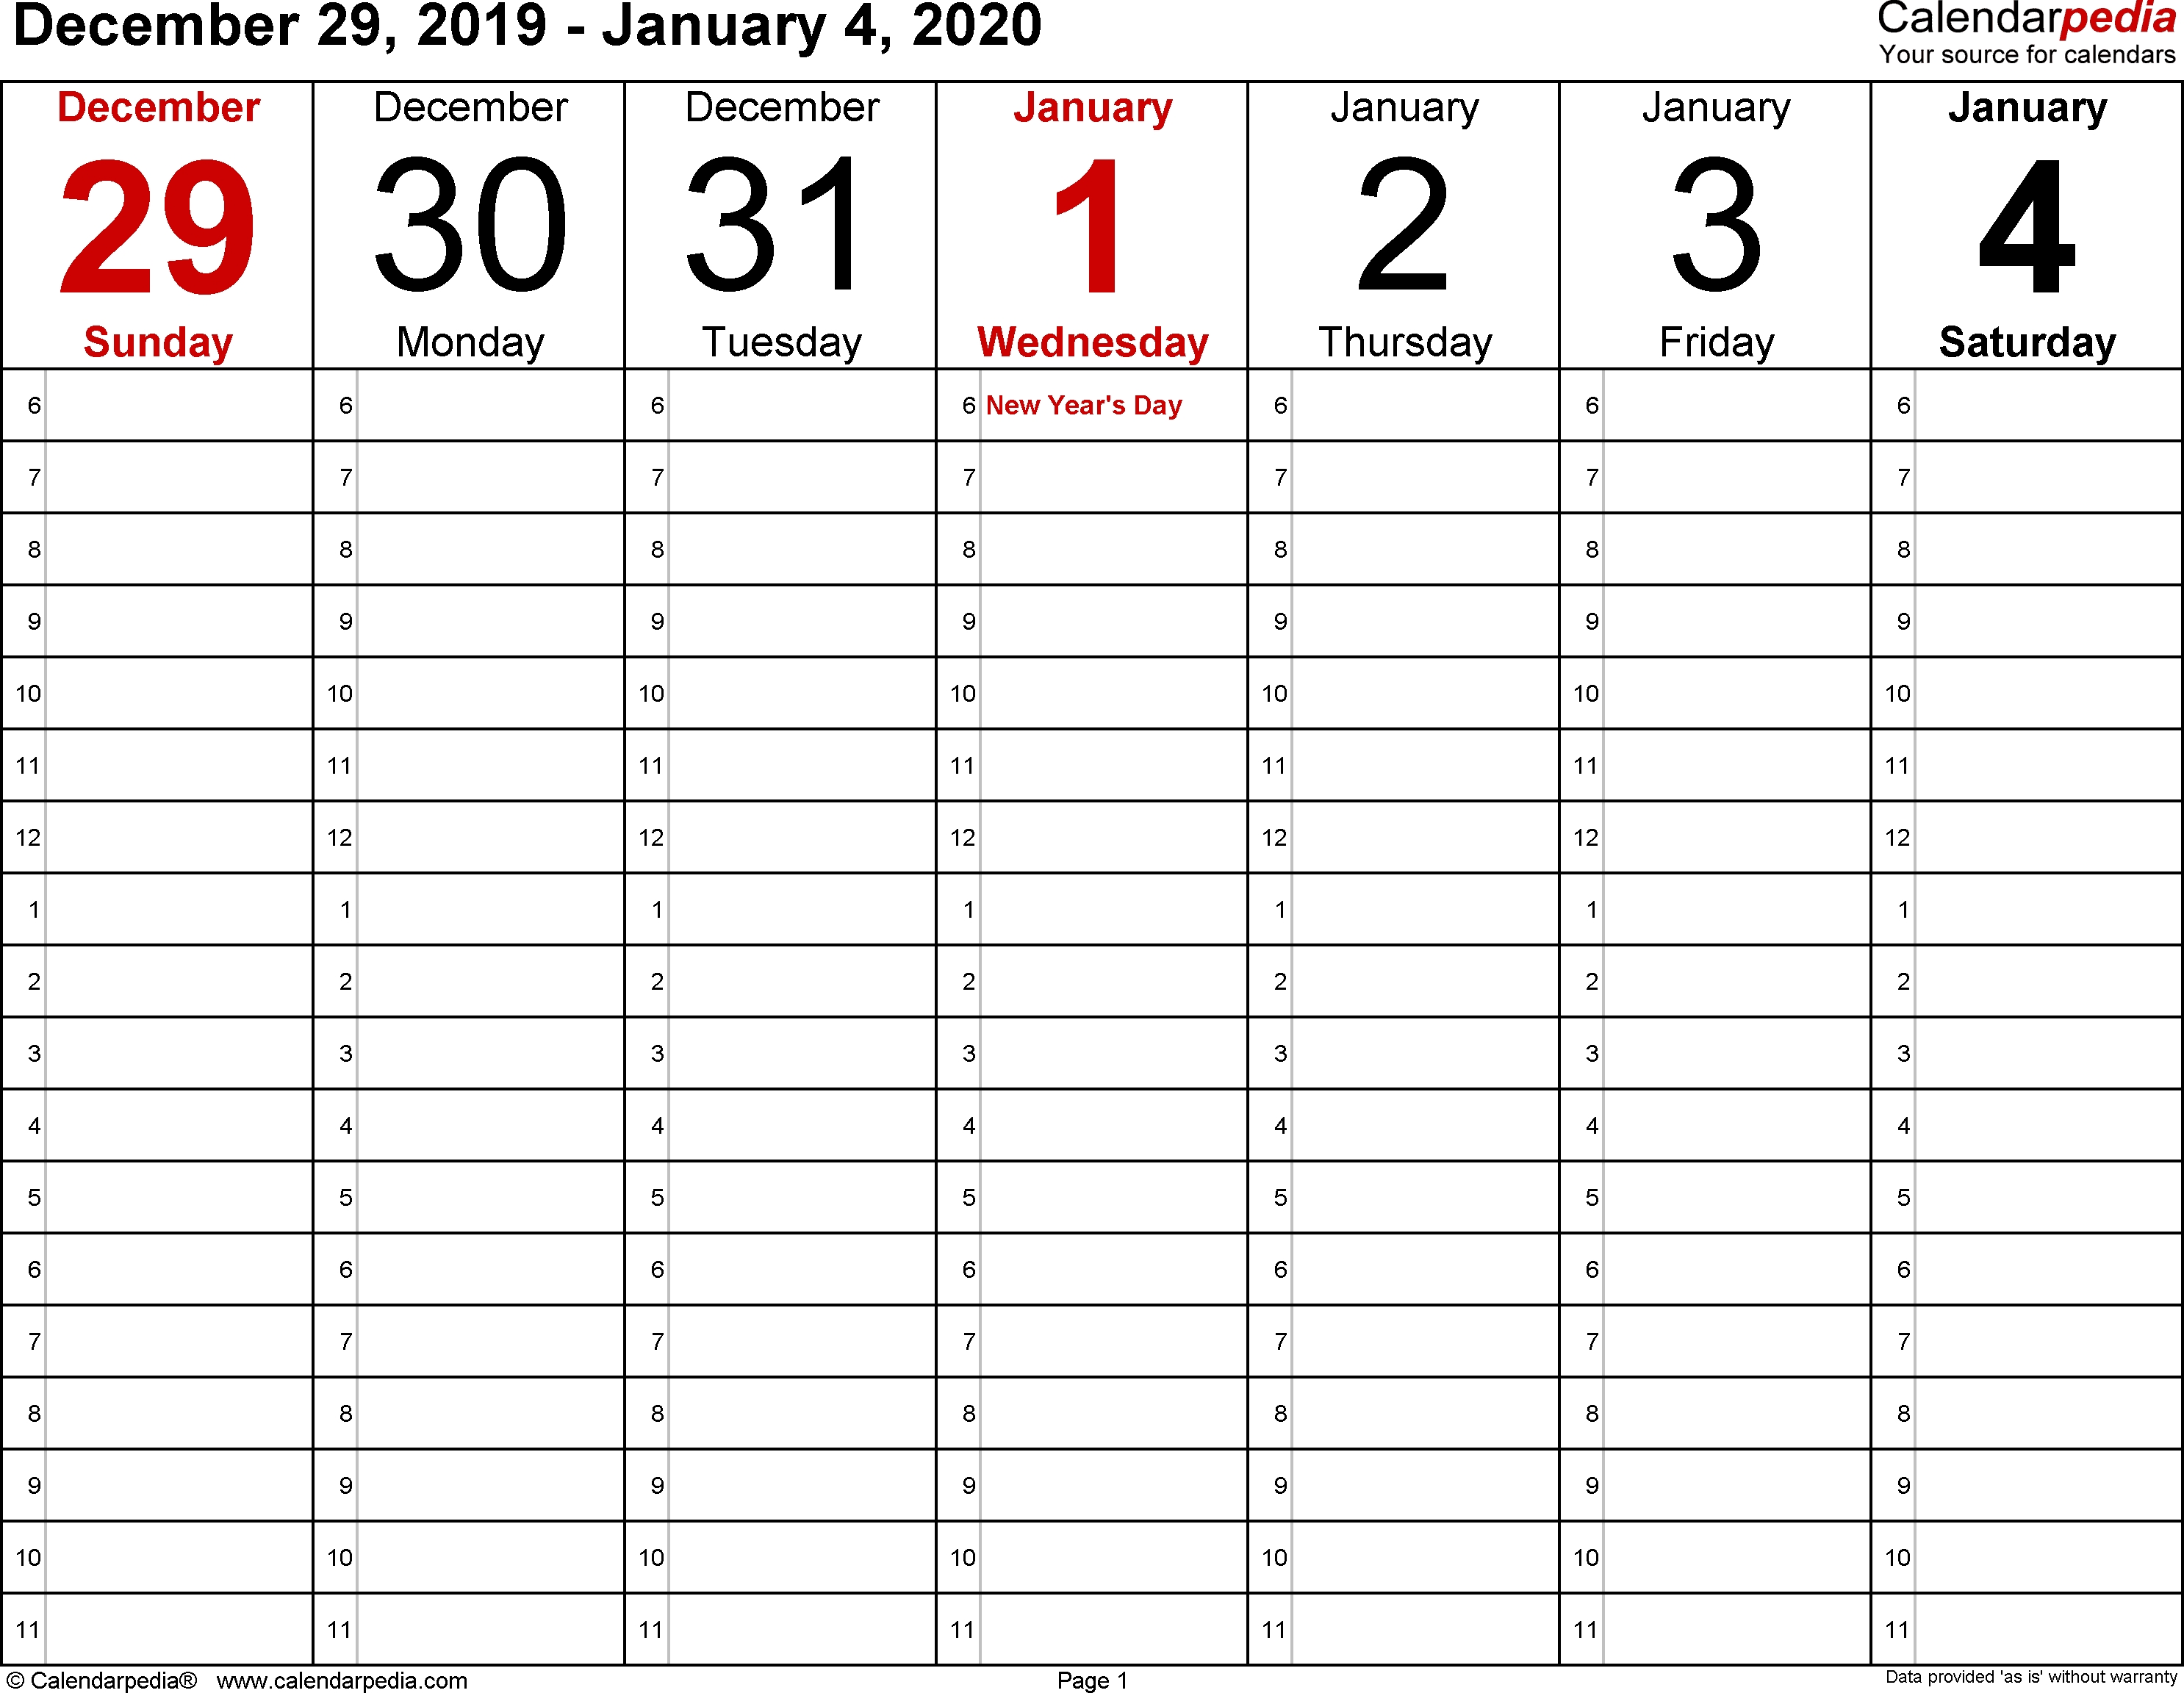 Weekly Calendar 2020 For Word - 12 Free Printable Templates pertaining to Printable Calendar One Week Per Page 2020